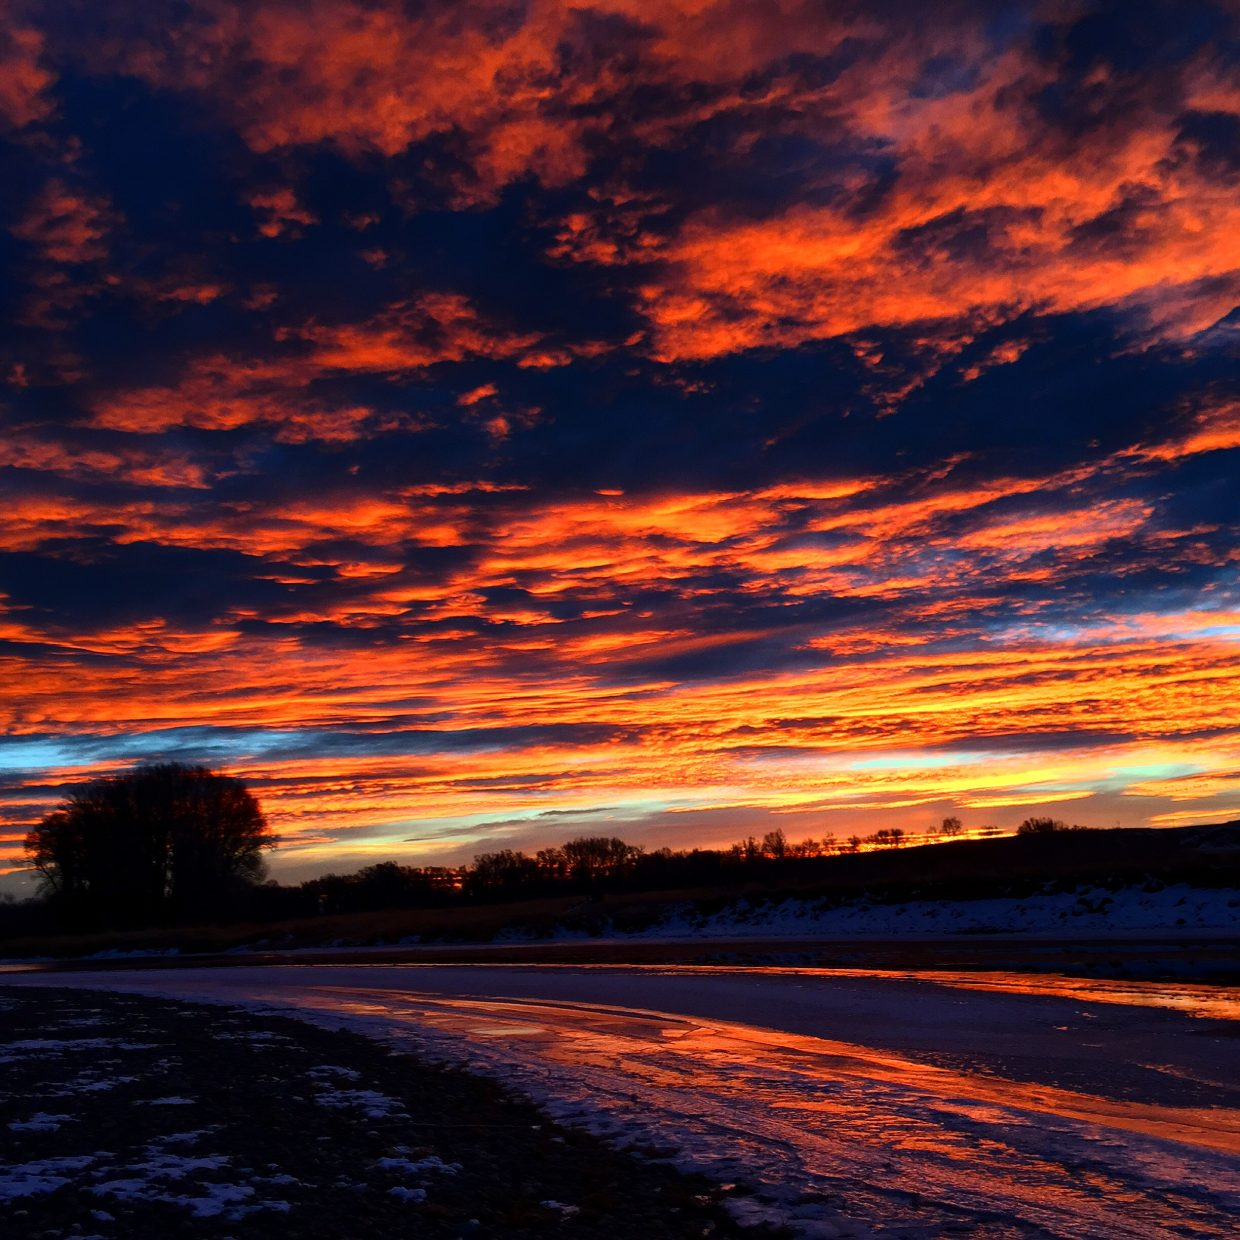 Sunrise in Hayden. Submitted by Michelle.